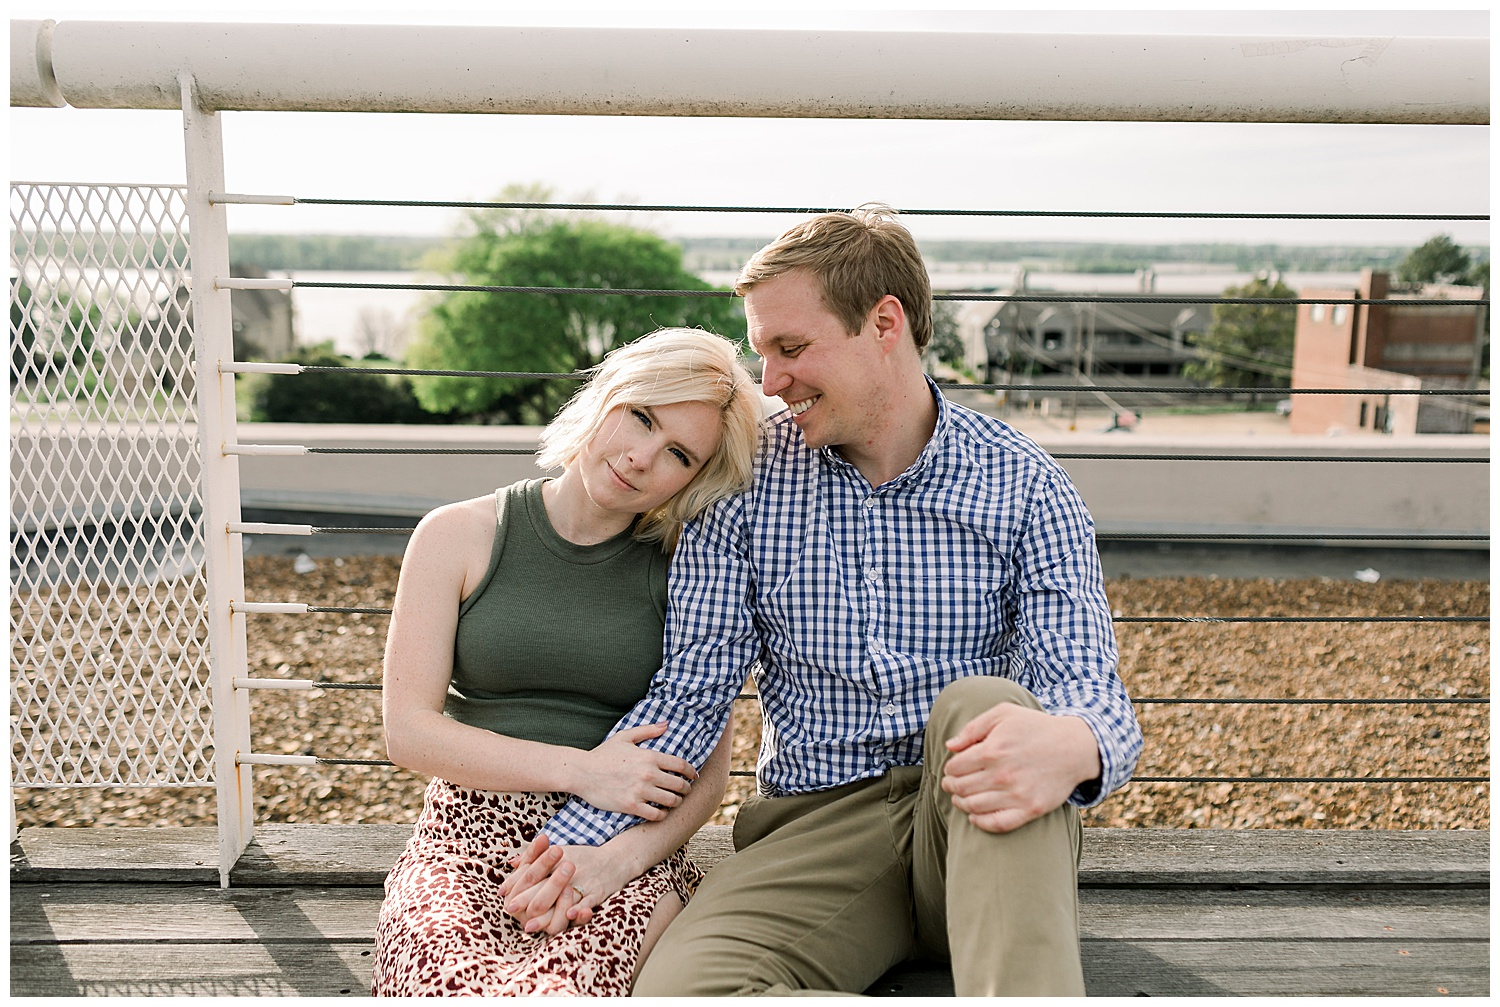 casey-matthew-bardog-downtown-memphis-engagement-mary-kate-steele-photography